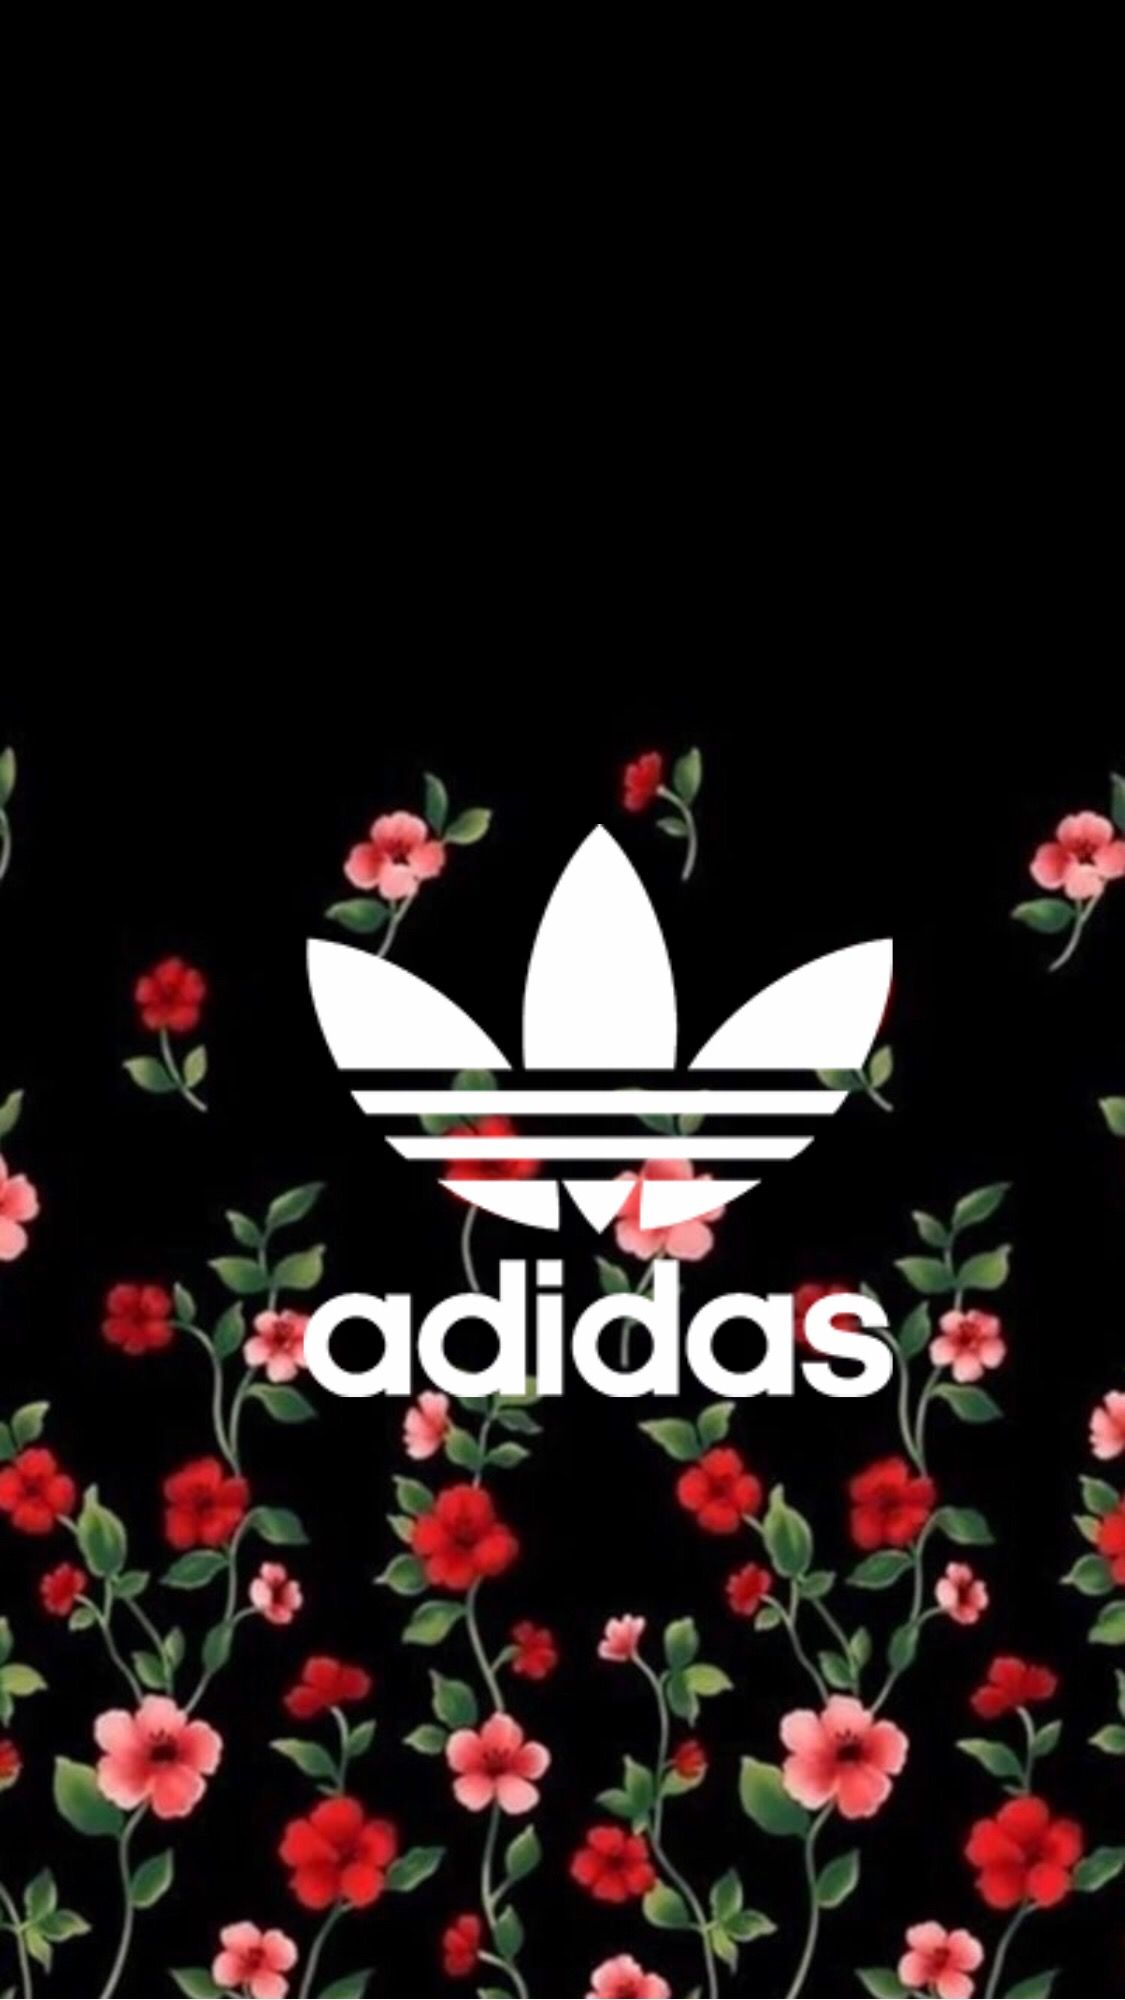 Adidas Floral Adidas Wallpapers Adidas Wallpaper Iphone